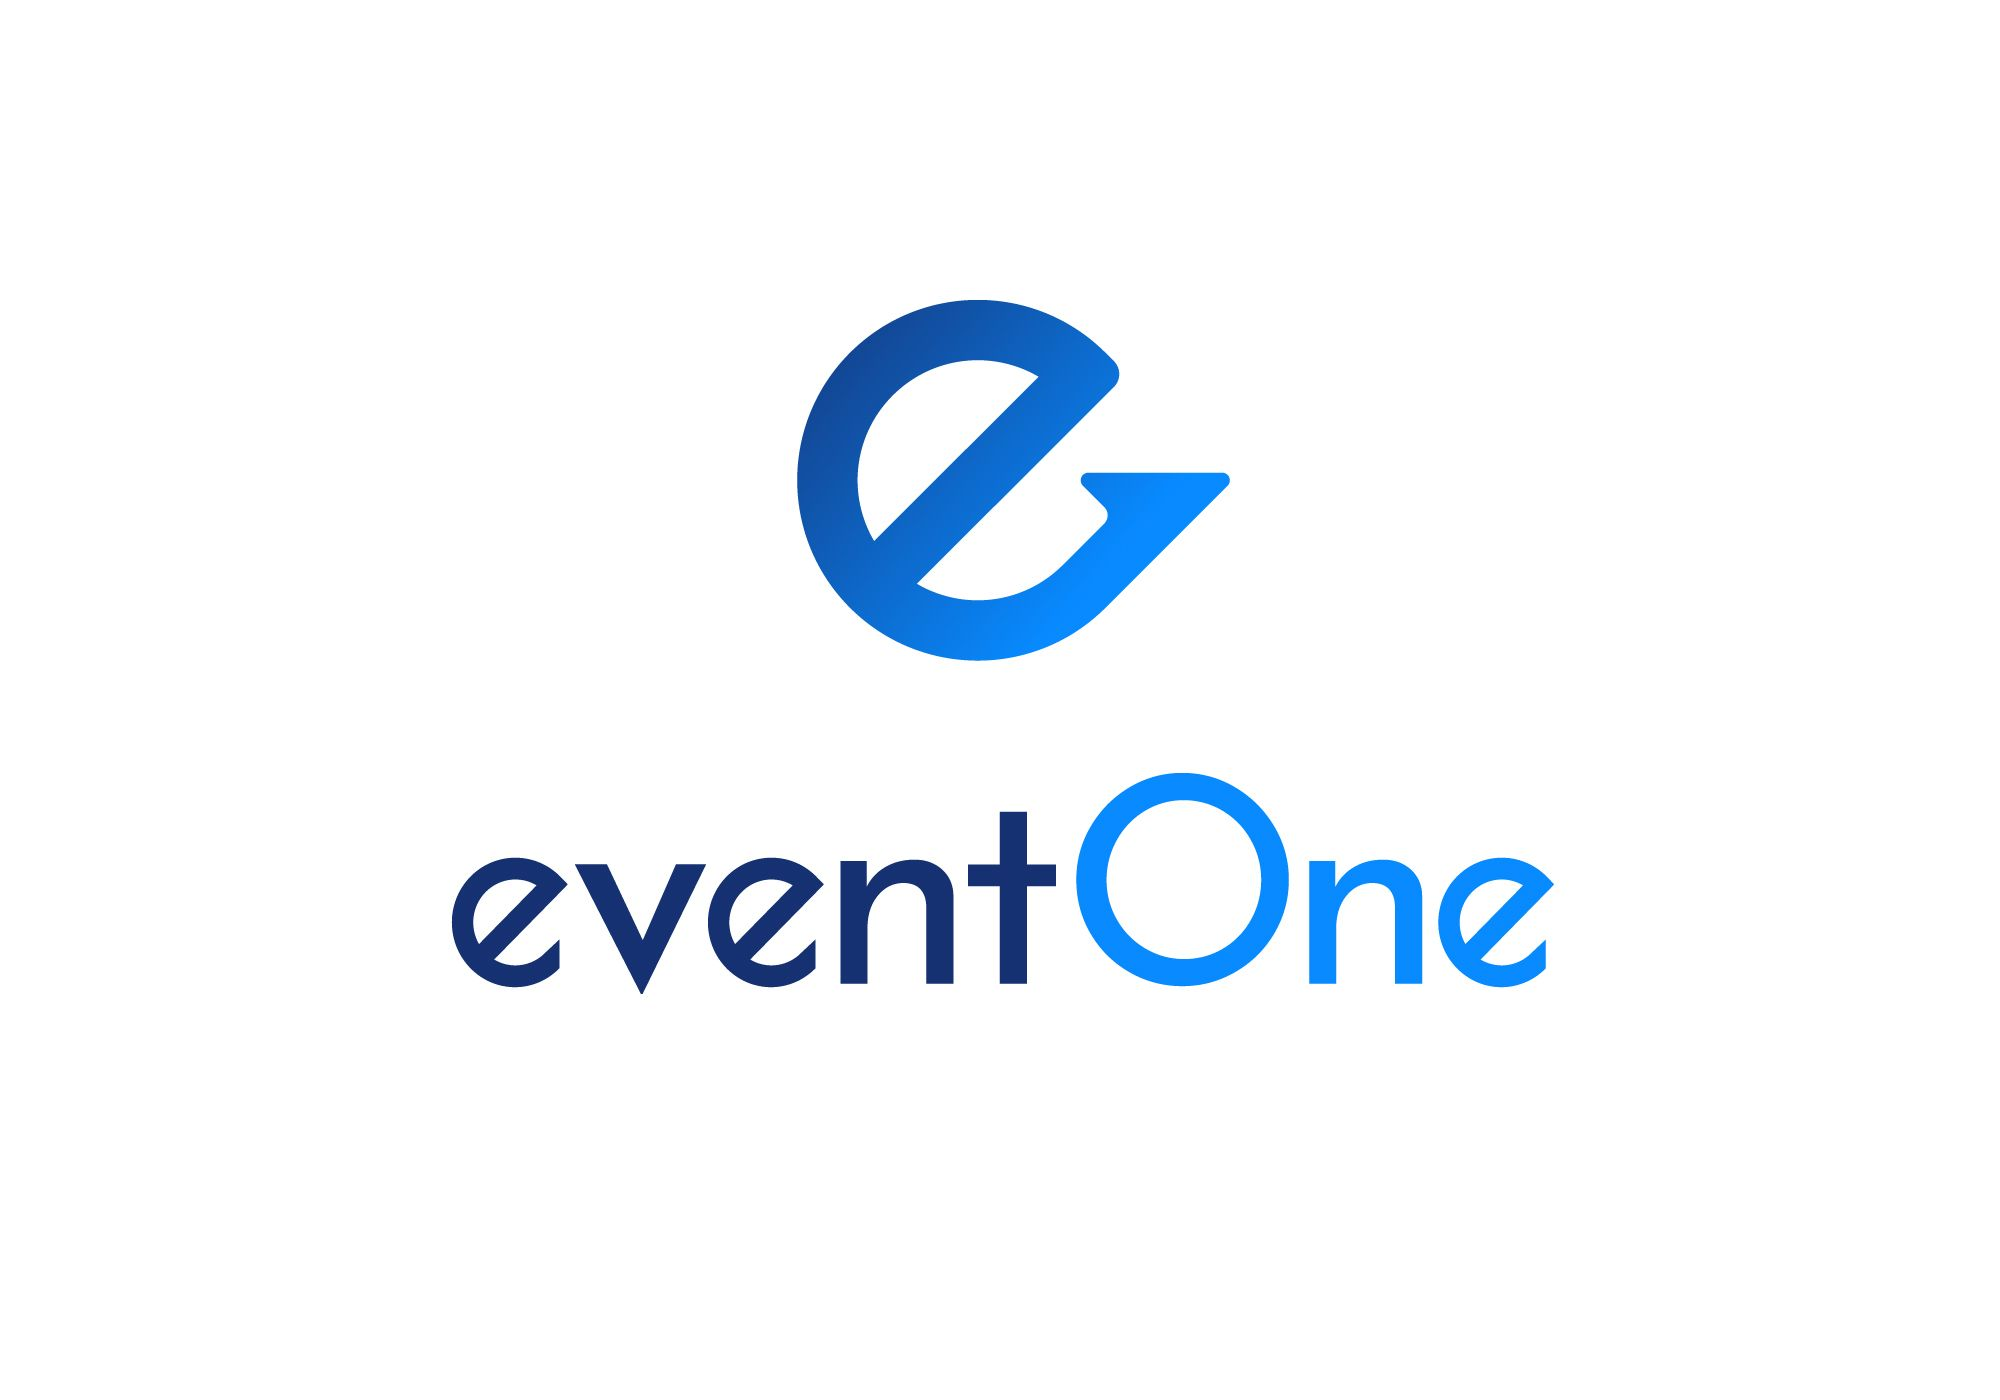 Say hello to eventOne!